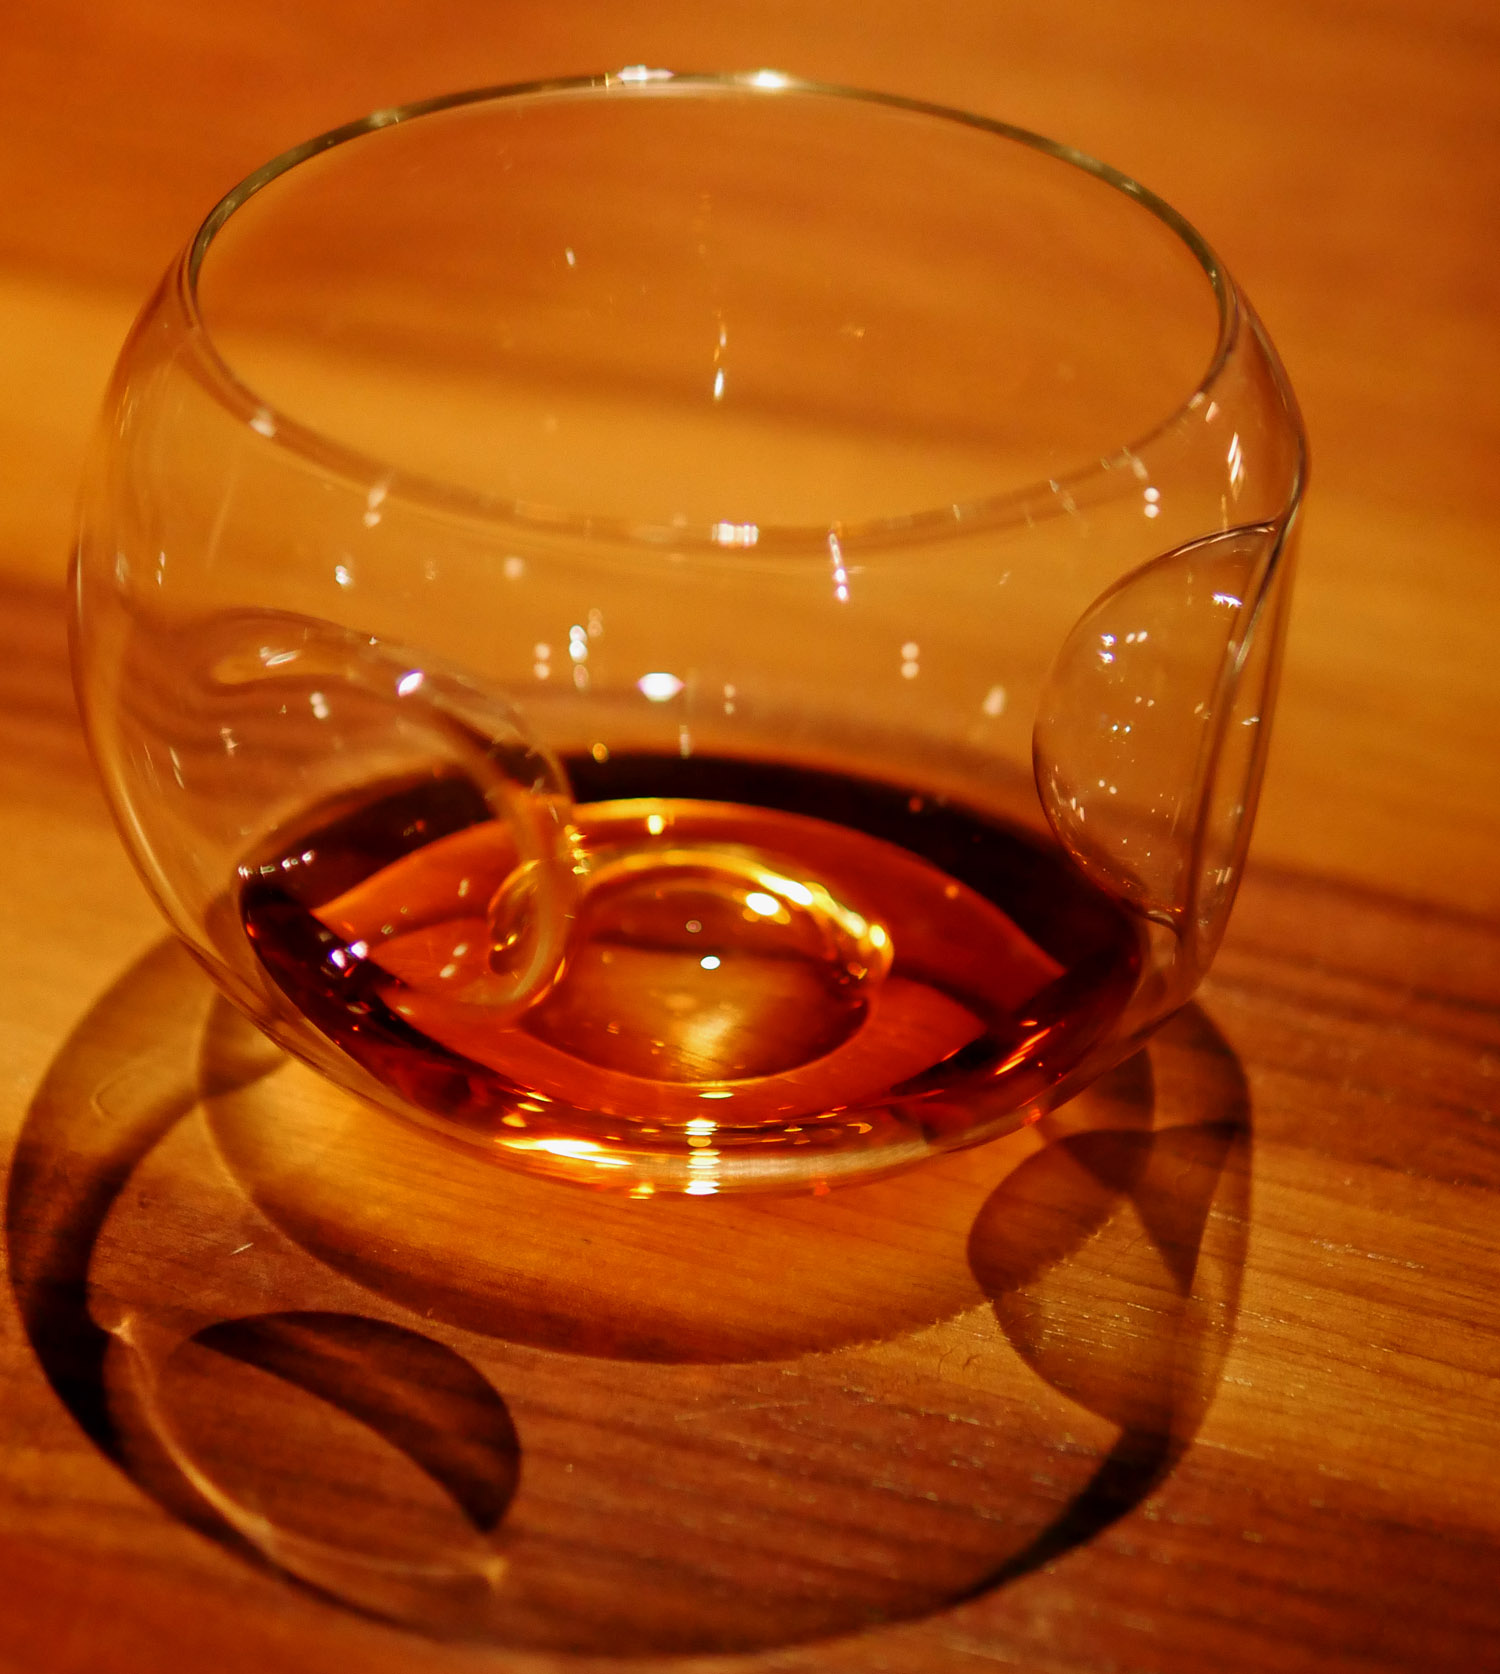 Gravner fish bowl wineglass - The Clove Club